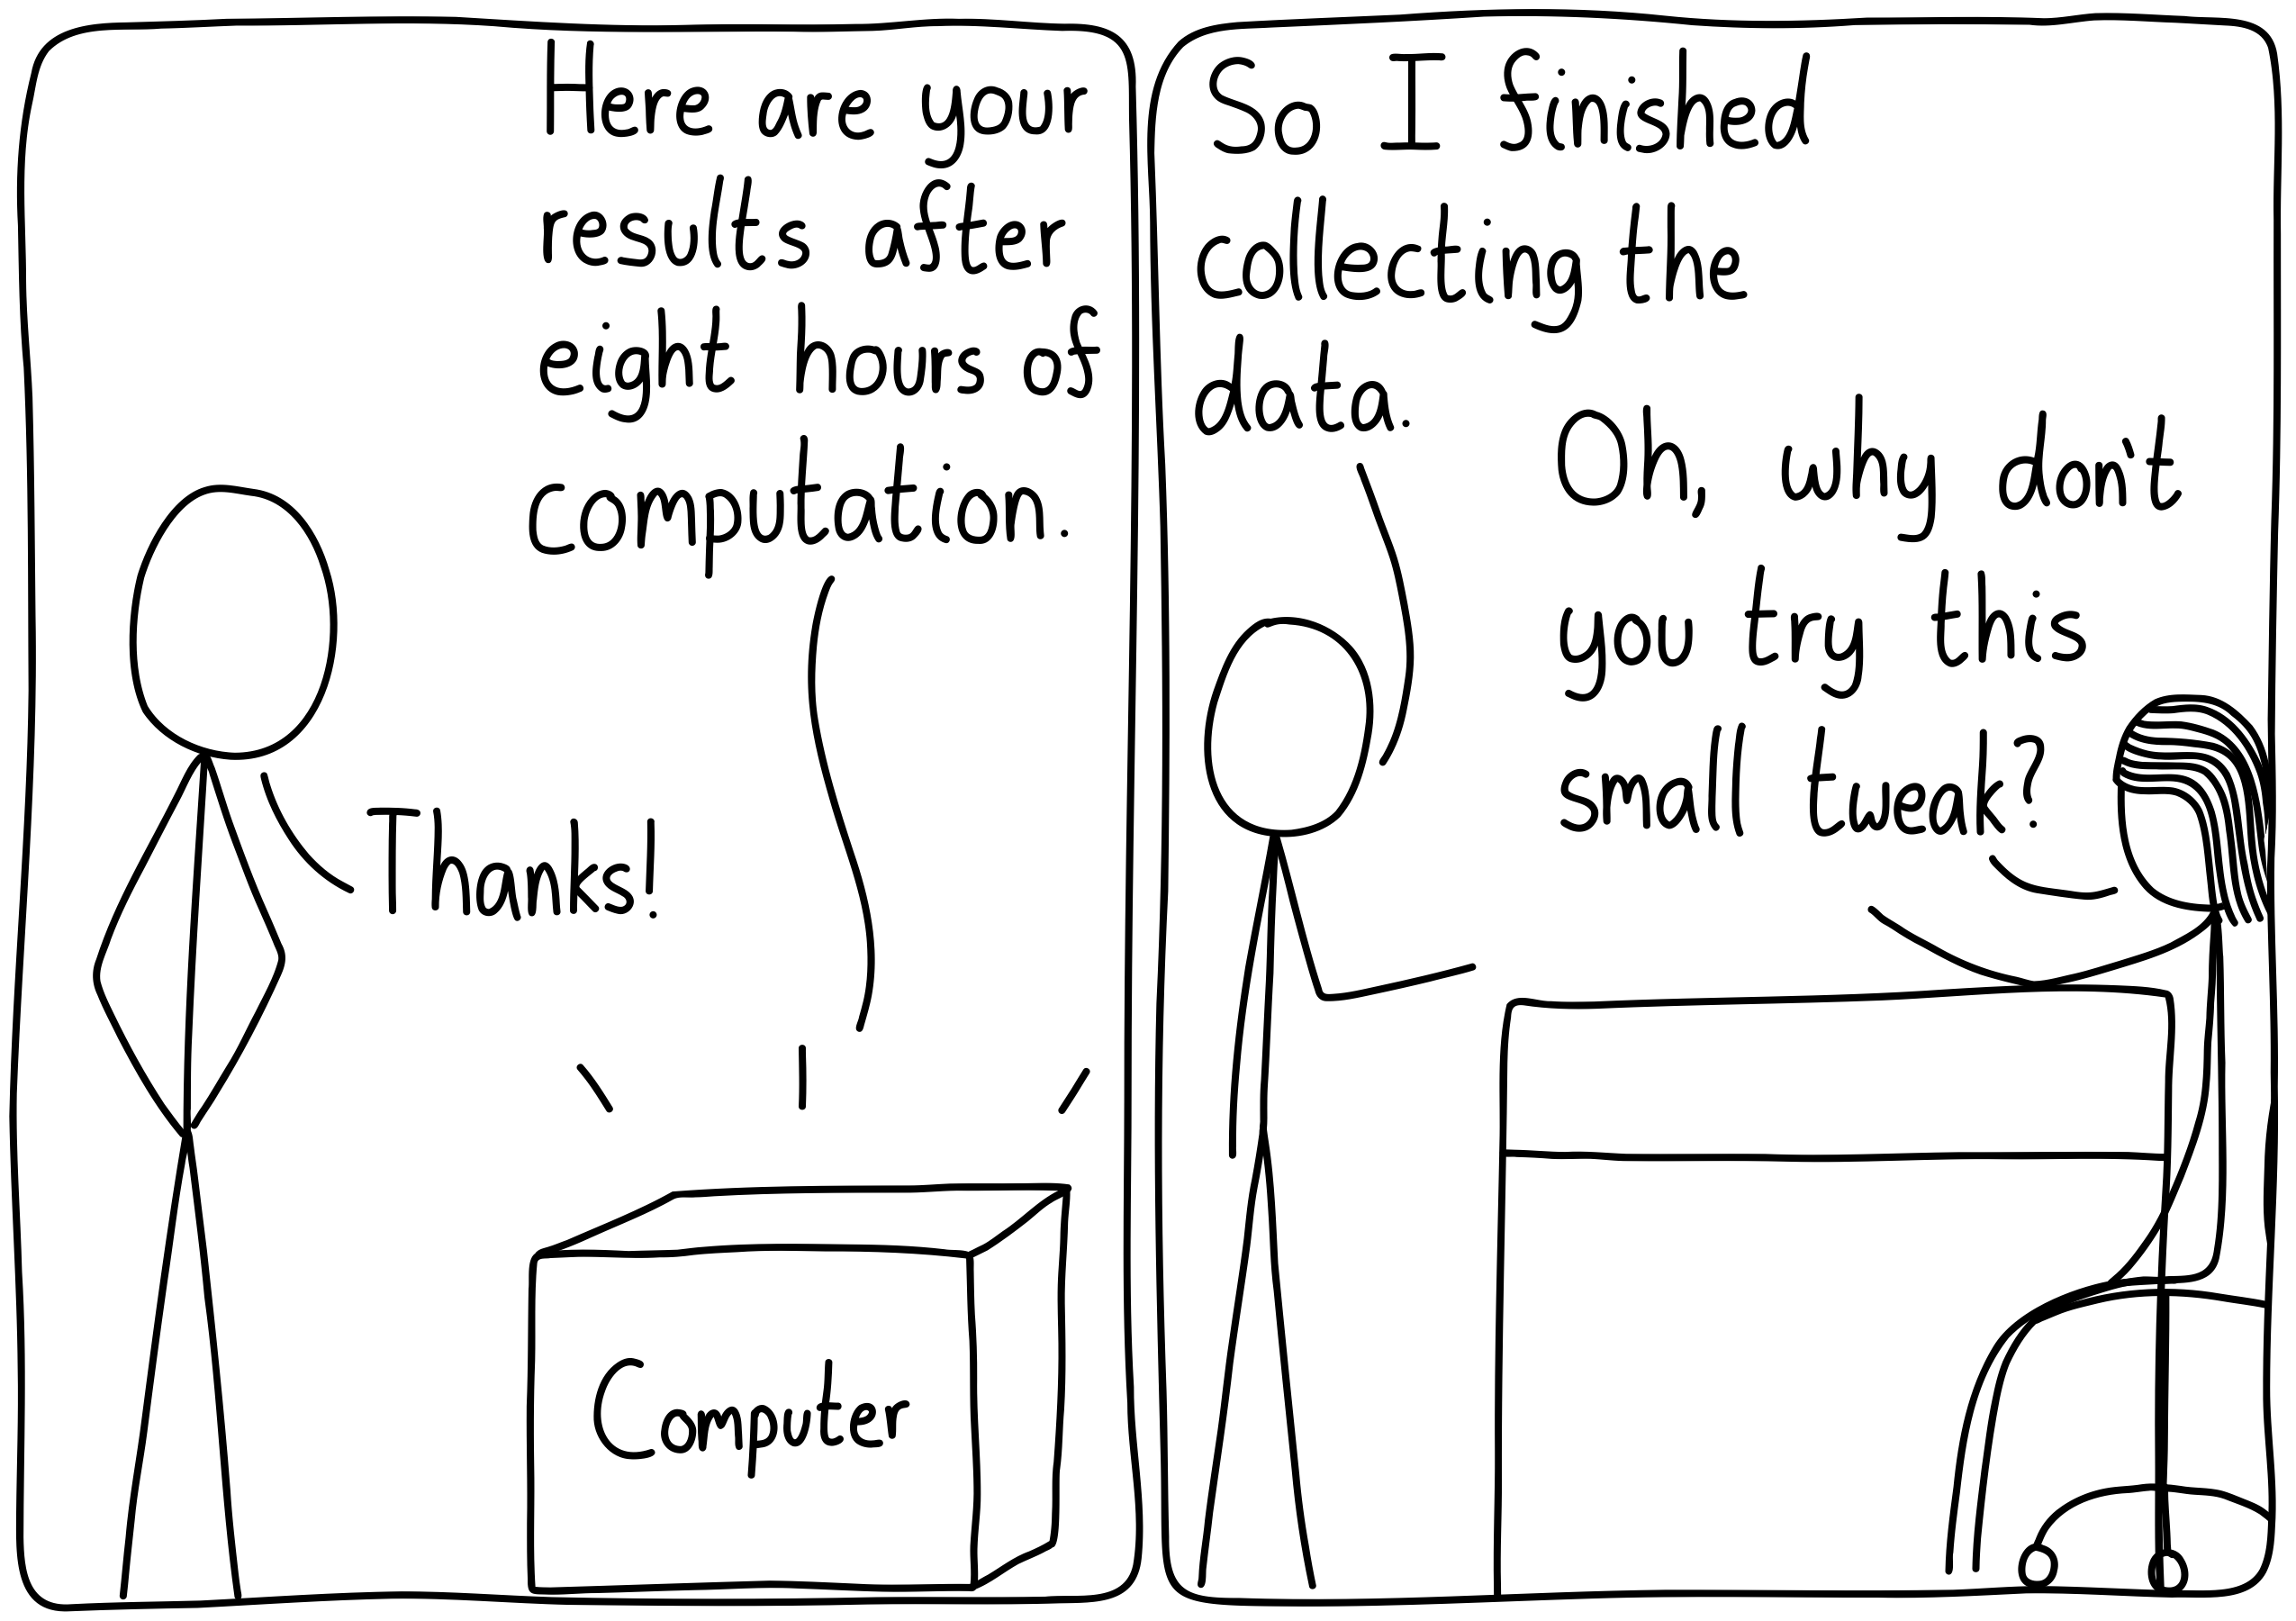 """Left panel: The black box computer says, """"Here are your results after eight hours of computation."""" The student says, """"Thanks!"""". Right panel: The student says, """"So I finished collecting the data."""" The professor says, """"Oh, why don't you try this small tweak?"""""""